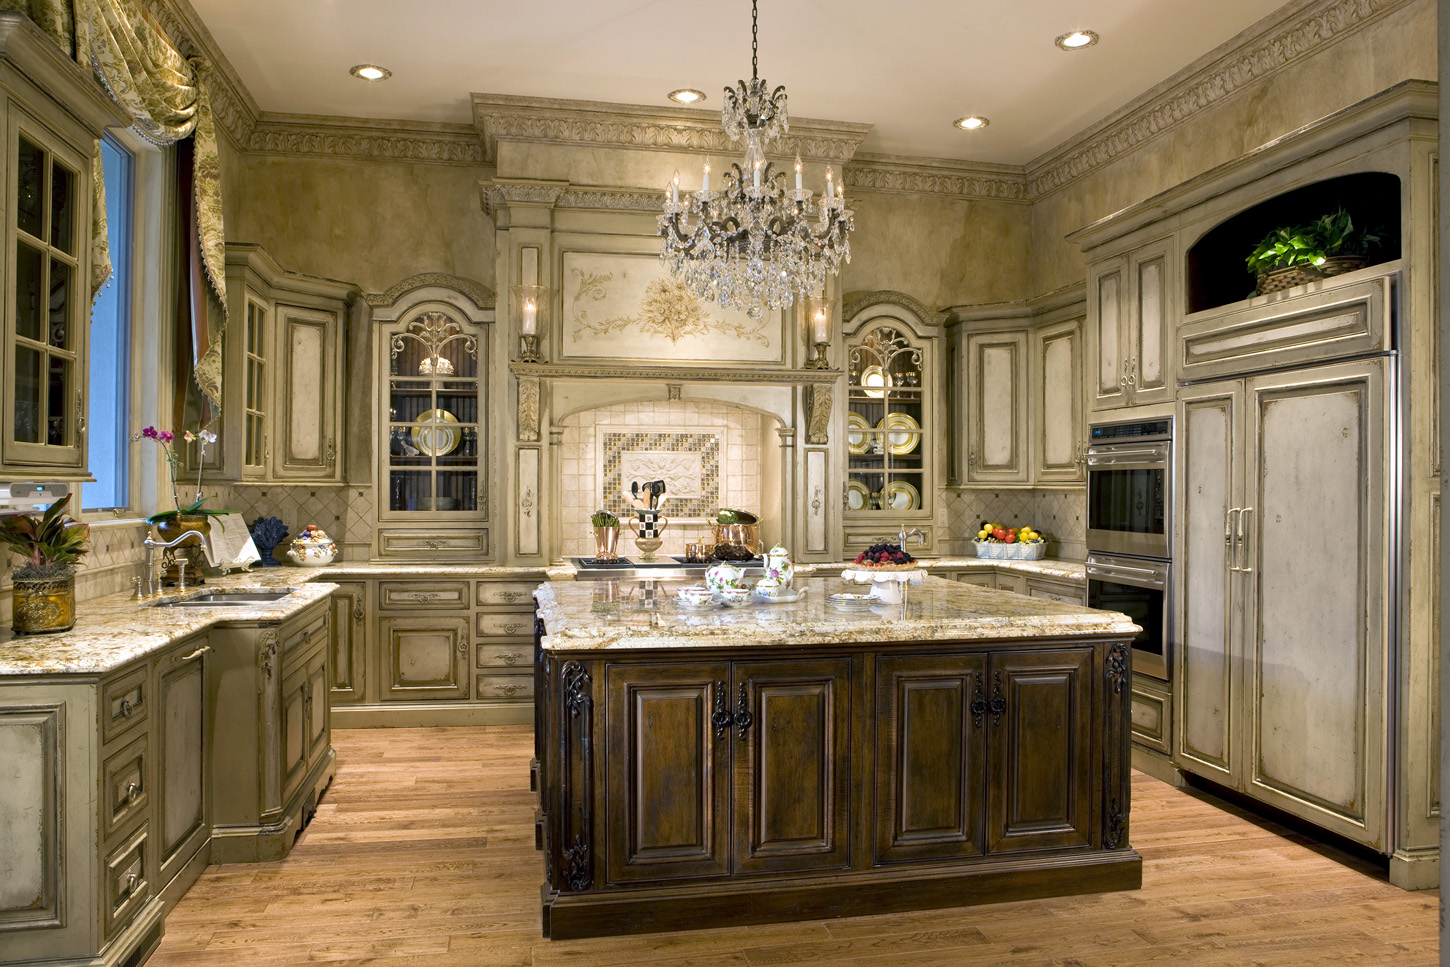 Niroo haleh design gallery potomac md 20854 for European kitchen designs